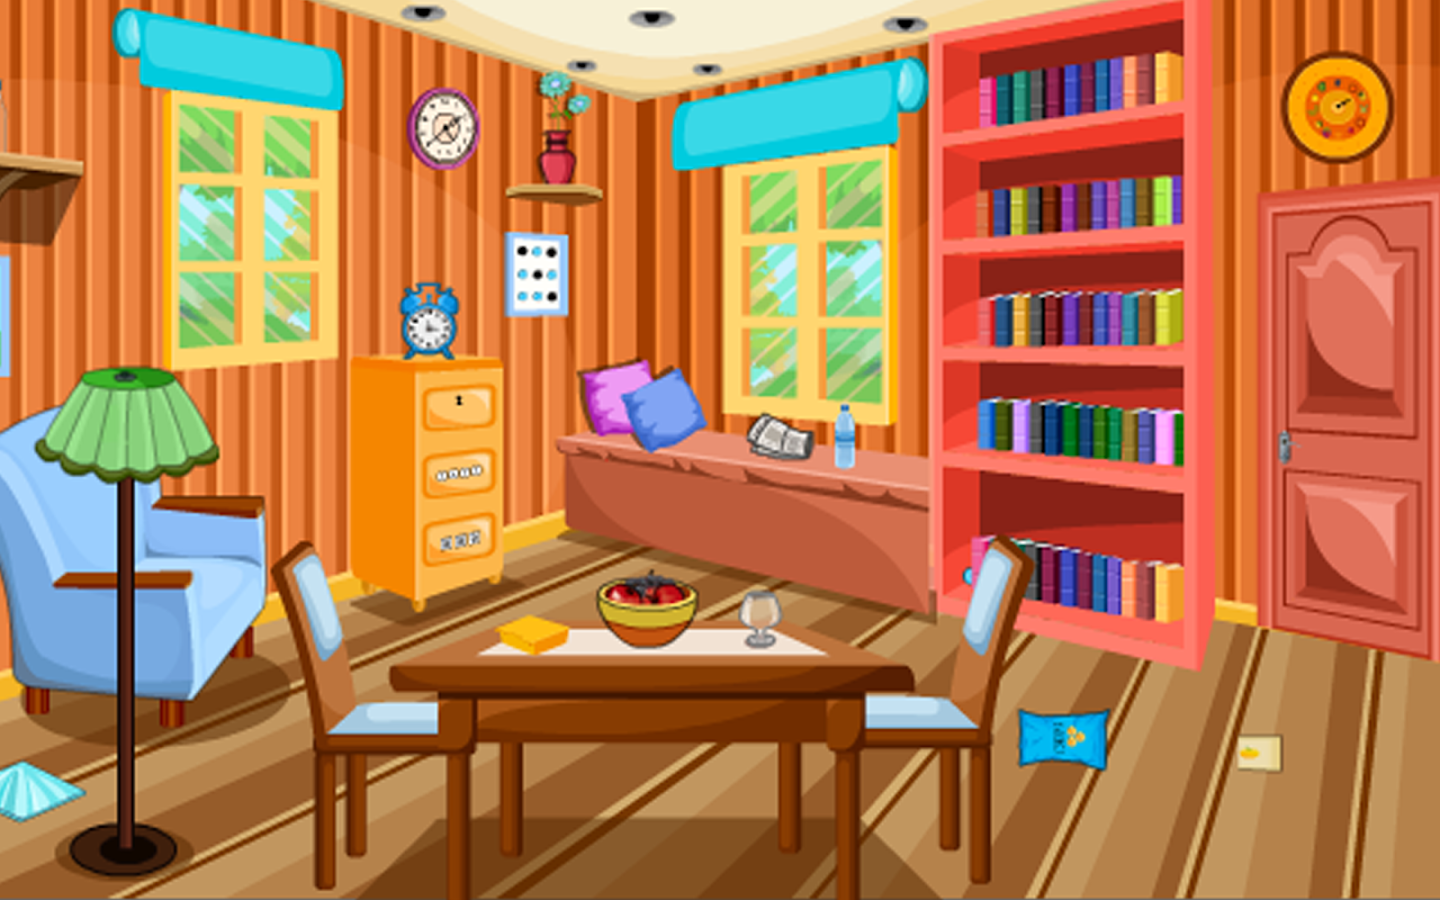 Escape puzzle dining room android apps on google play for Escape puzzle